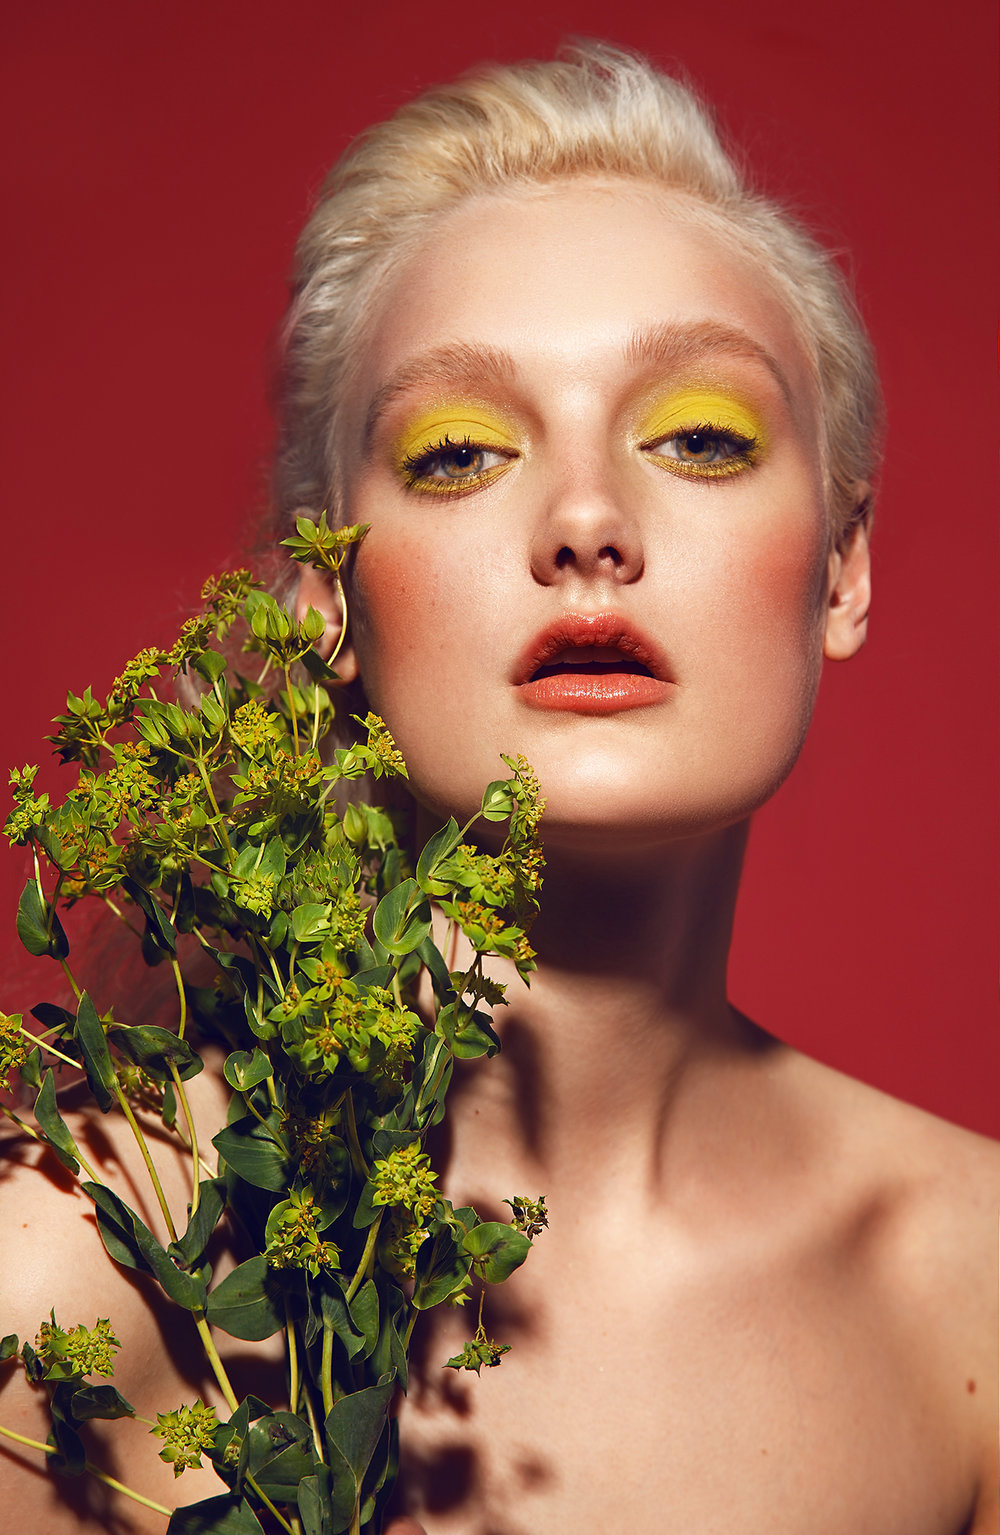 Beauty-Photography-by-beauty-Photographer-Dana-Cole-yellow-eyeshadow-makeup-fashion-model-heartbreak-models-flowers-profoto-blonde-model-red-lips-beauty-photo-colorful-makeup.jpg